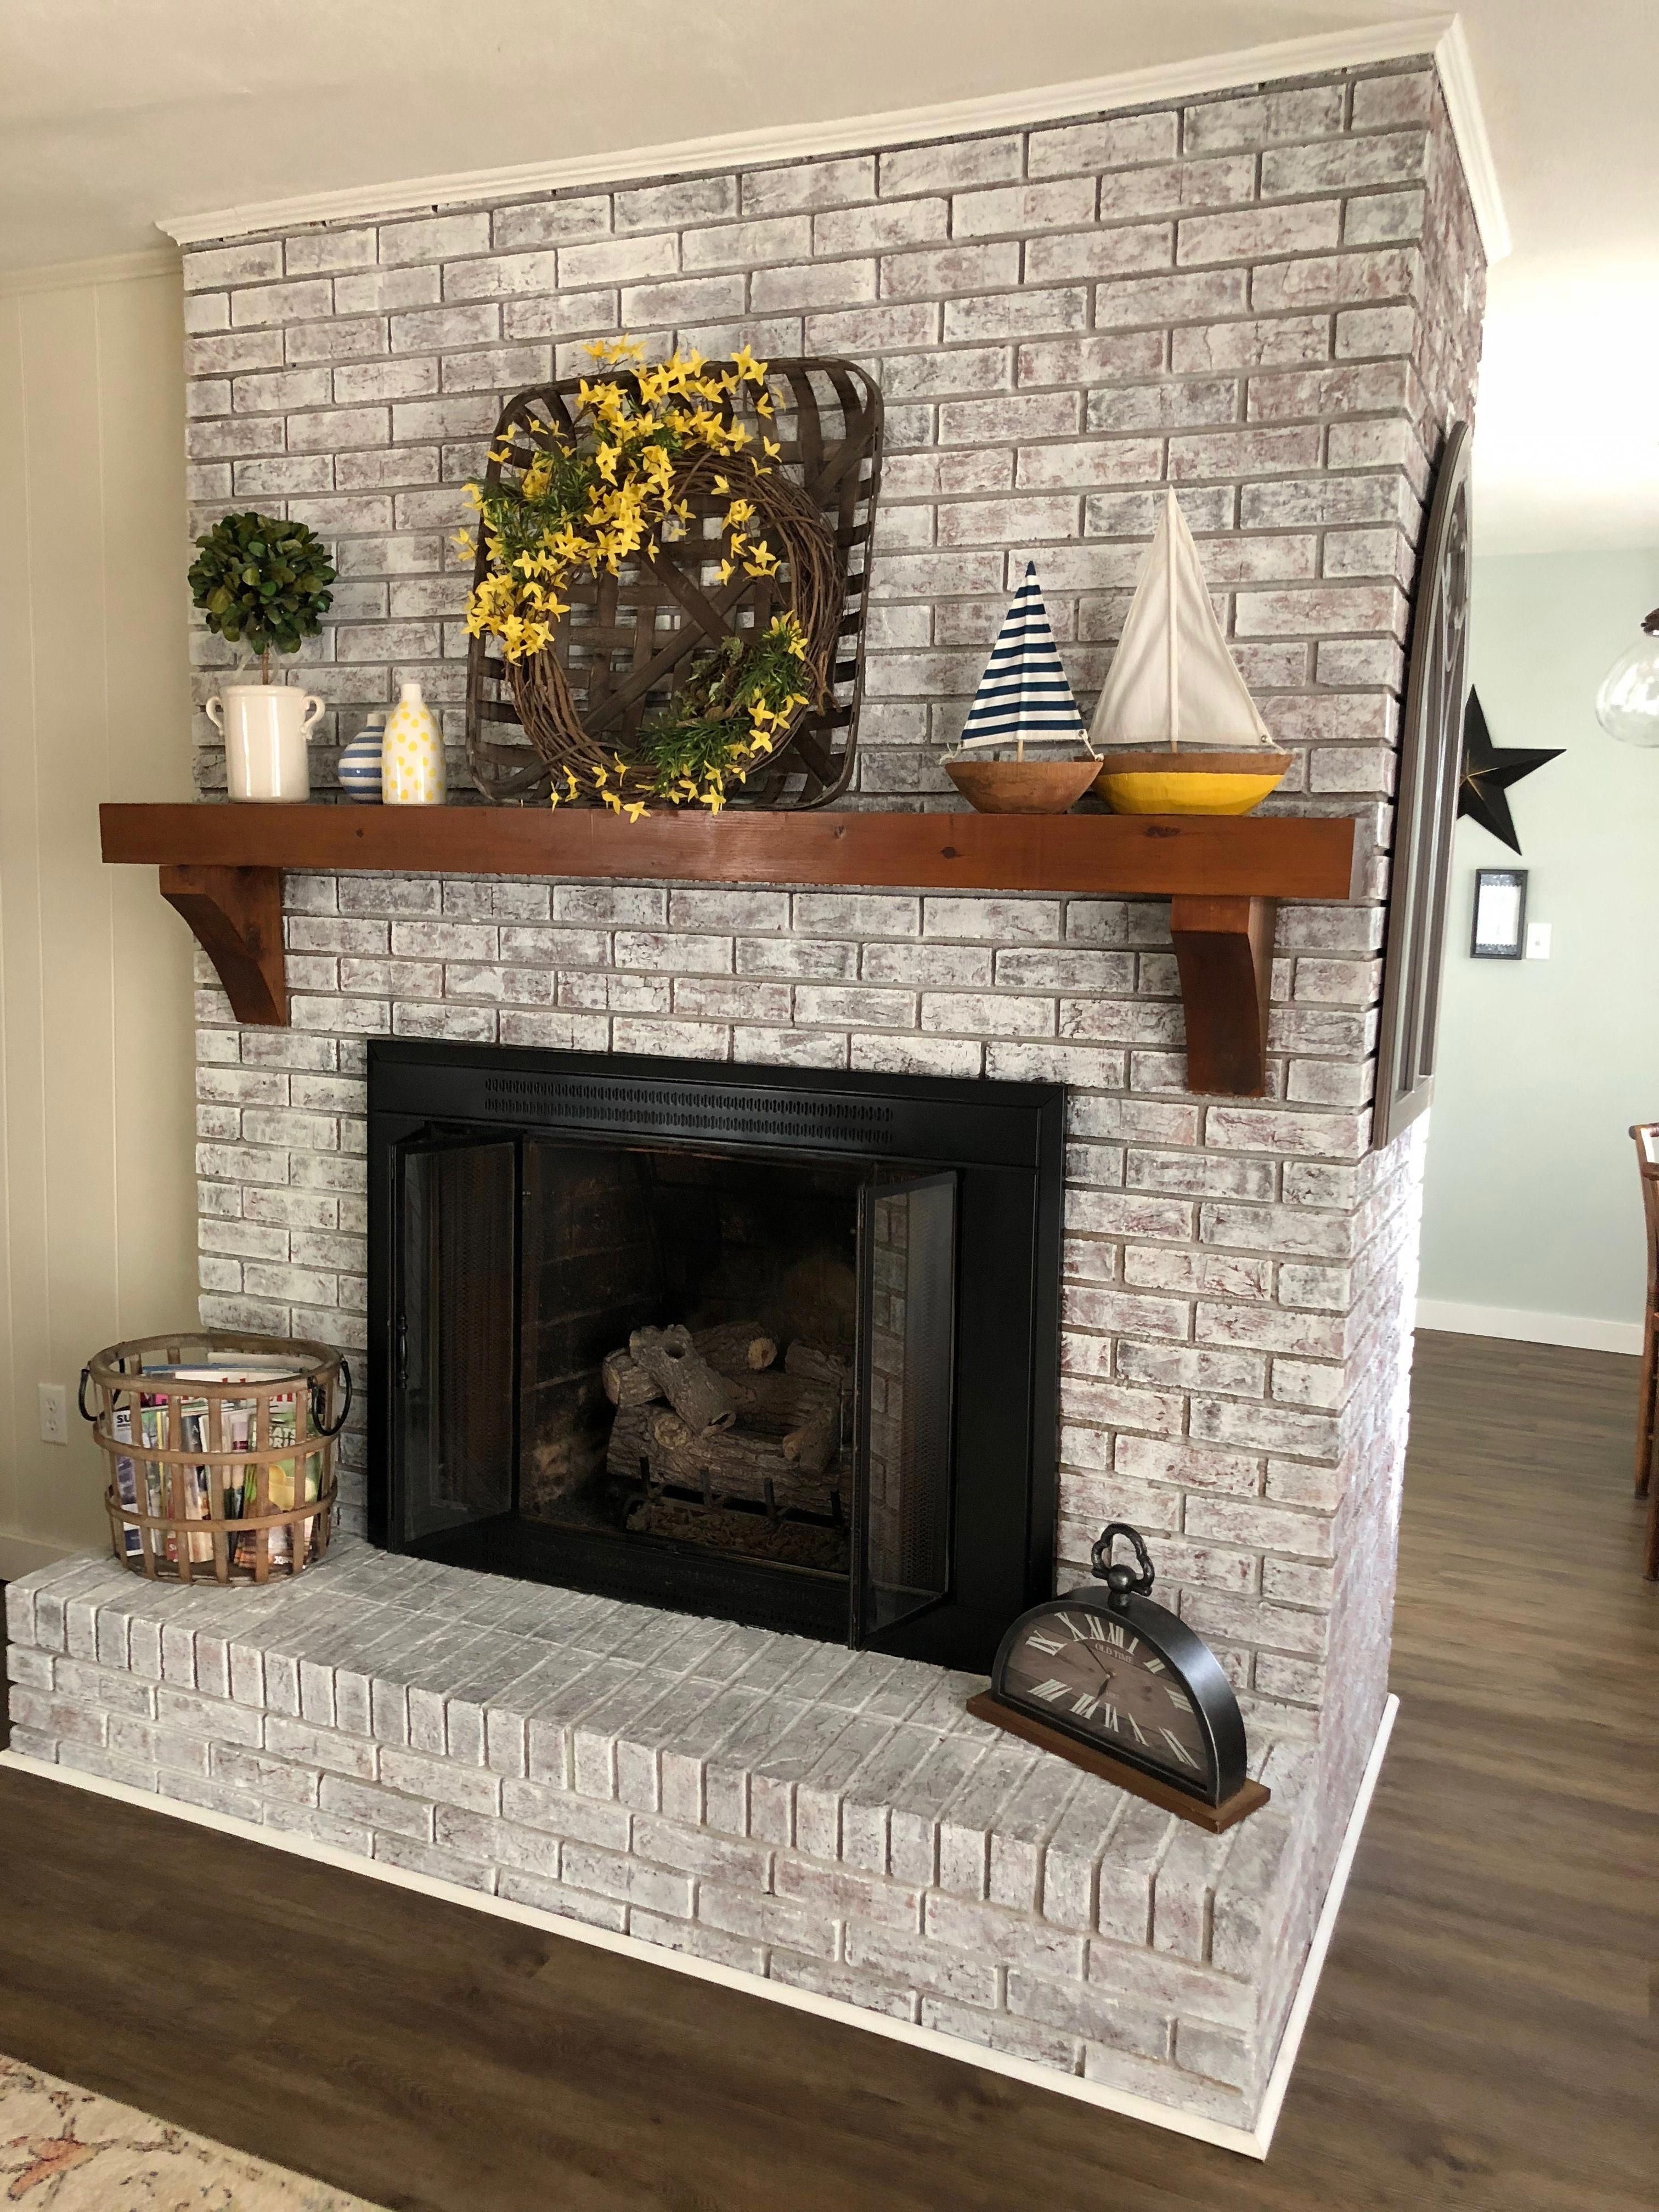 Painting Interior Brick Fireplace Best Of Painted Brick Fireplace Sw Pure White Over Dark Red Brick